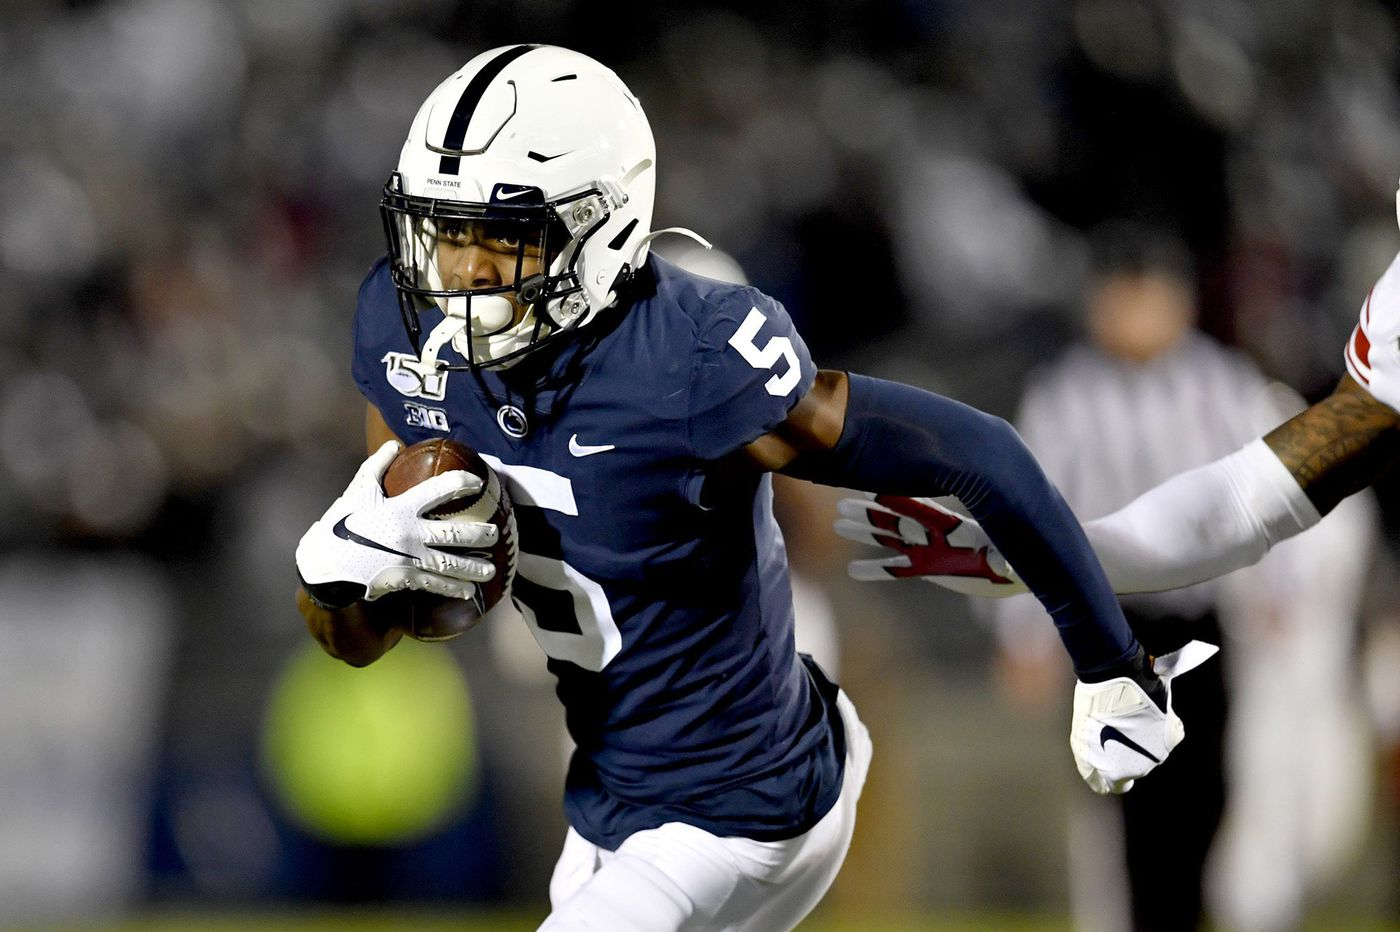 Penn State need freshmen to boost wide receiver production in 2020